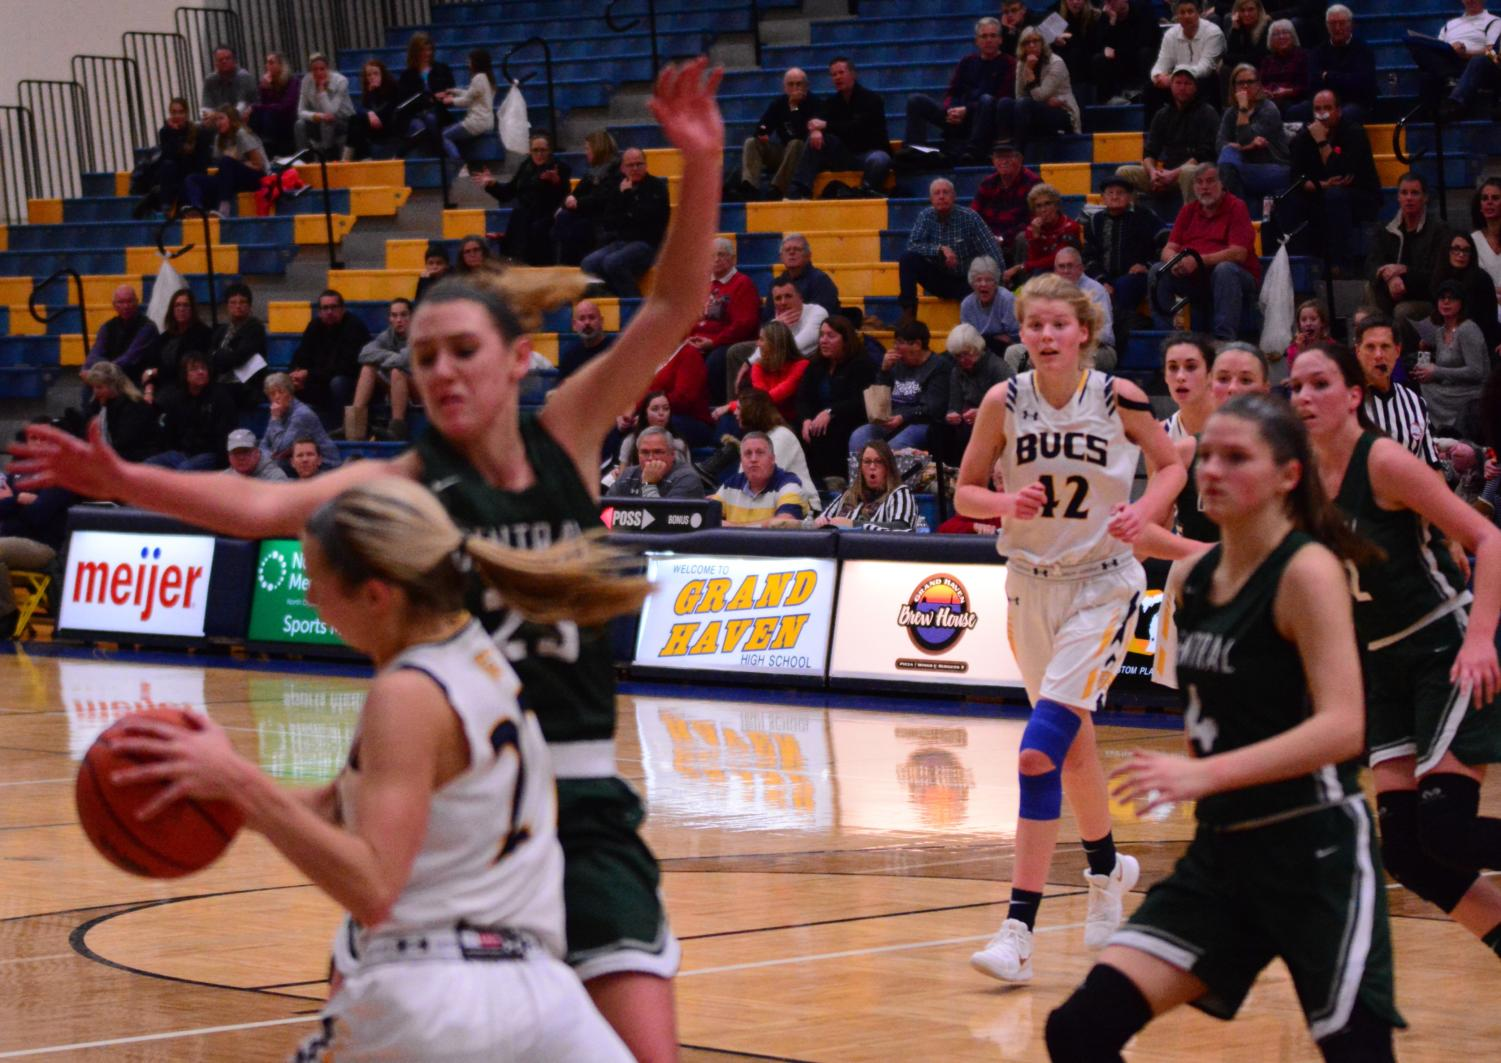 Senior Autumn Buikema looks to pass to junior Esther Byington while being heavily guarded by Forest Hills Central defenders. Buikema had a solid night with six points against the Fighting Scots.